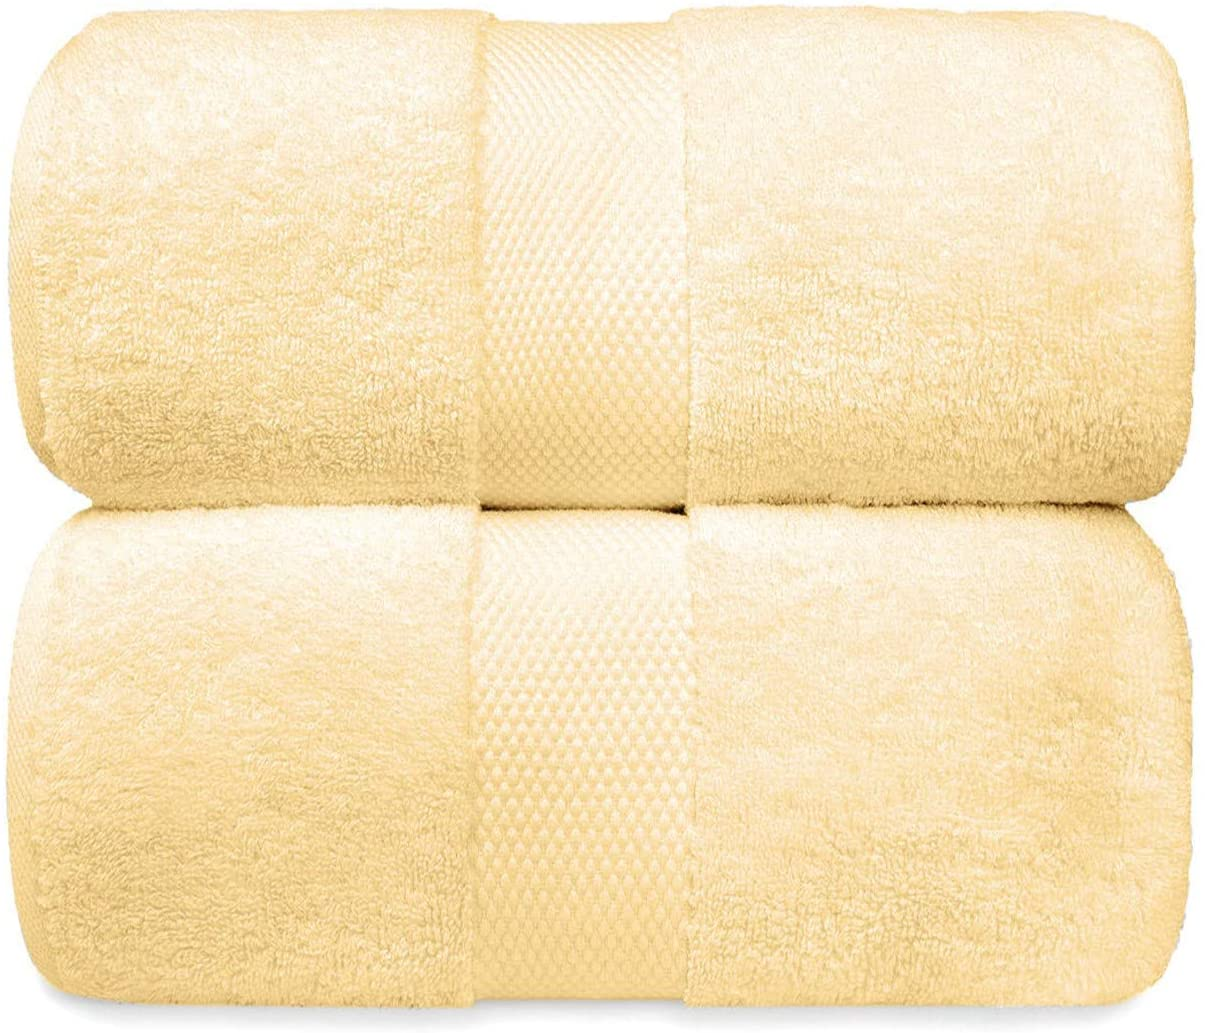 White Classic Luxury Bath Sheet Towels Extra Large | Highly Absorbent Hotel spa Collection Bathroom Towel | 35x70 Inch | 2 Pack (Beige)